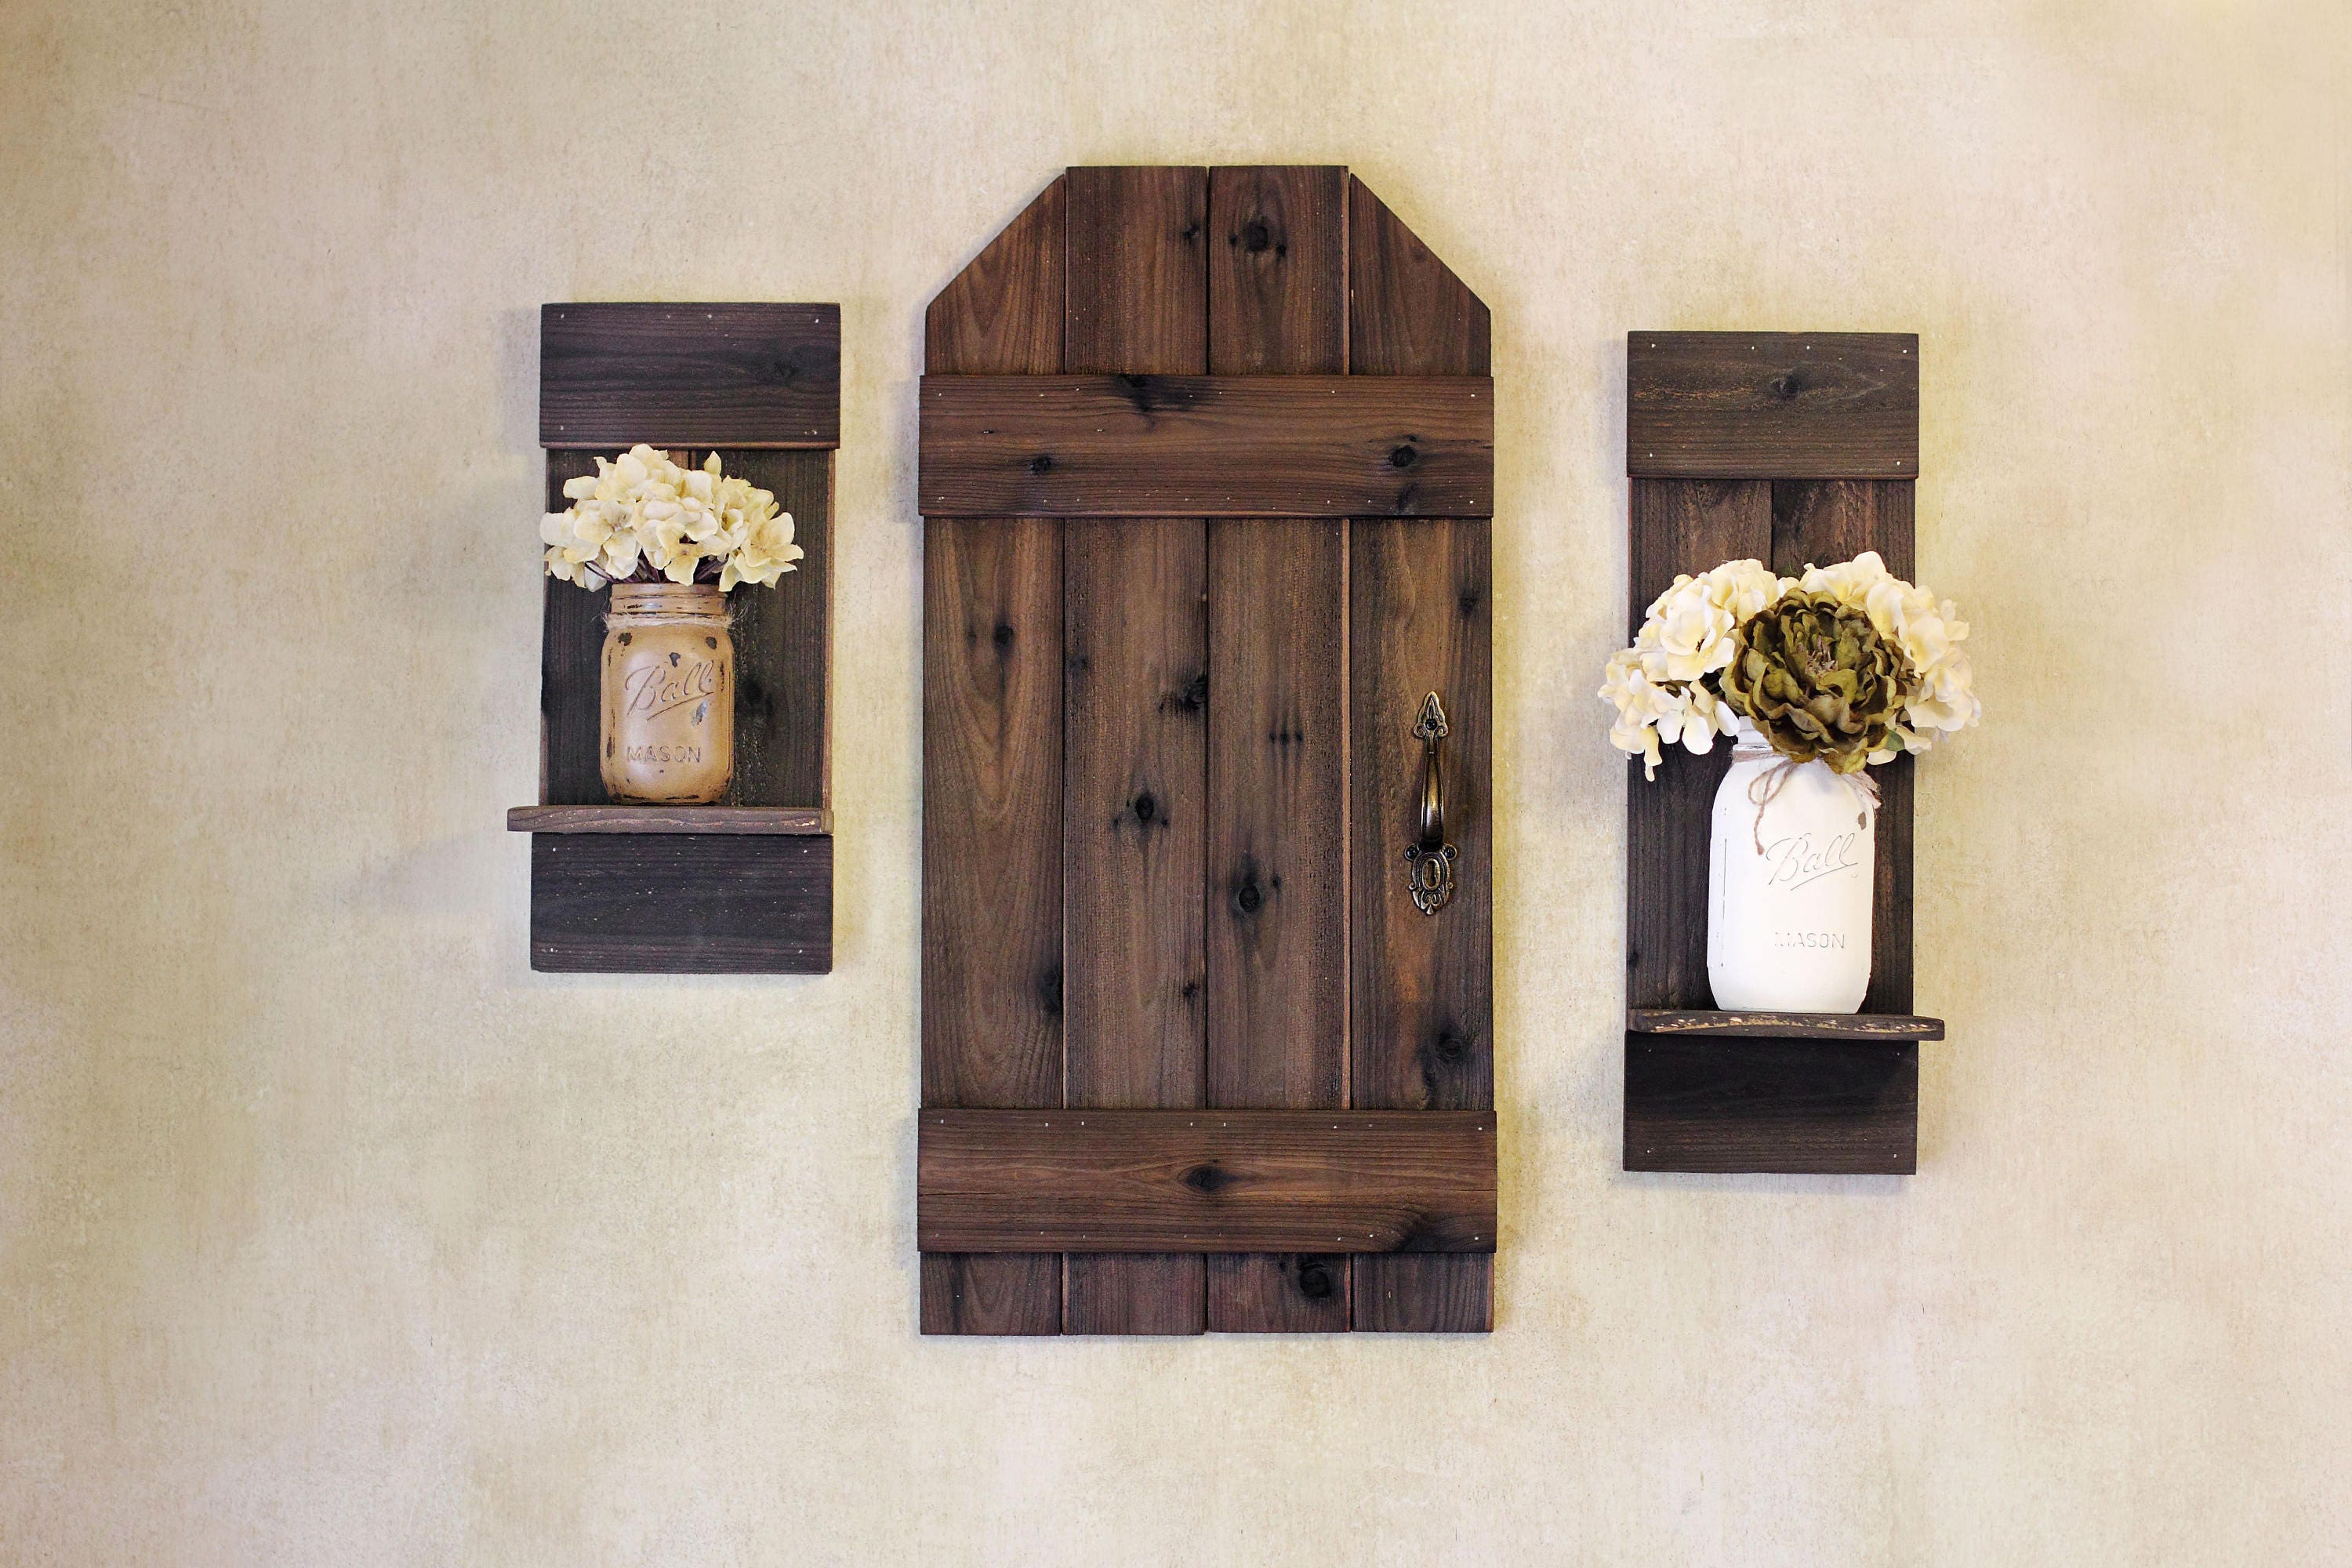 Exceptionnel Rustic Barn Door, Mini Barn Door, Wood Shutters, Rustic Wall Decor, Rustic